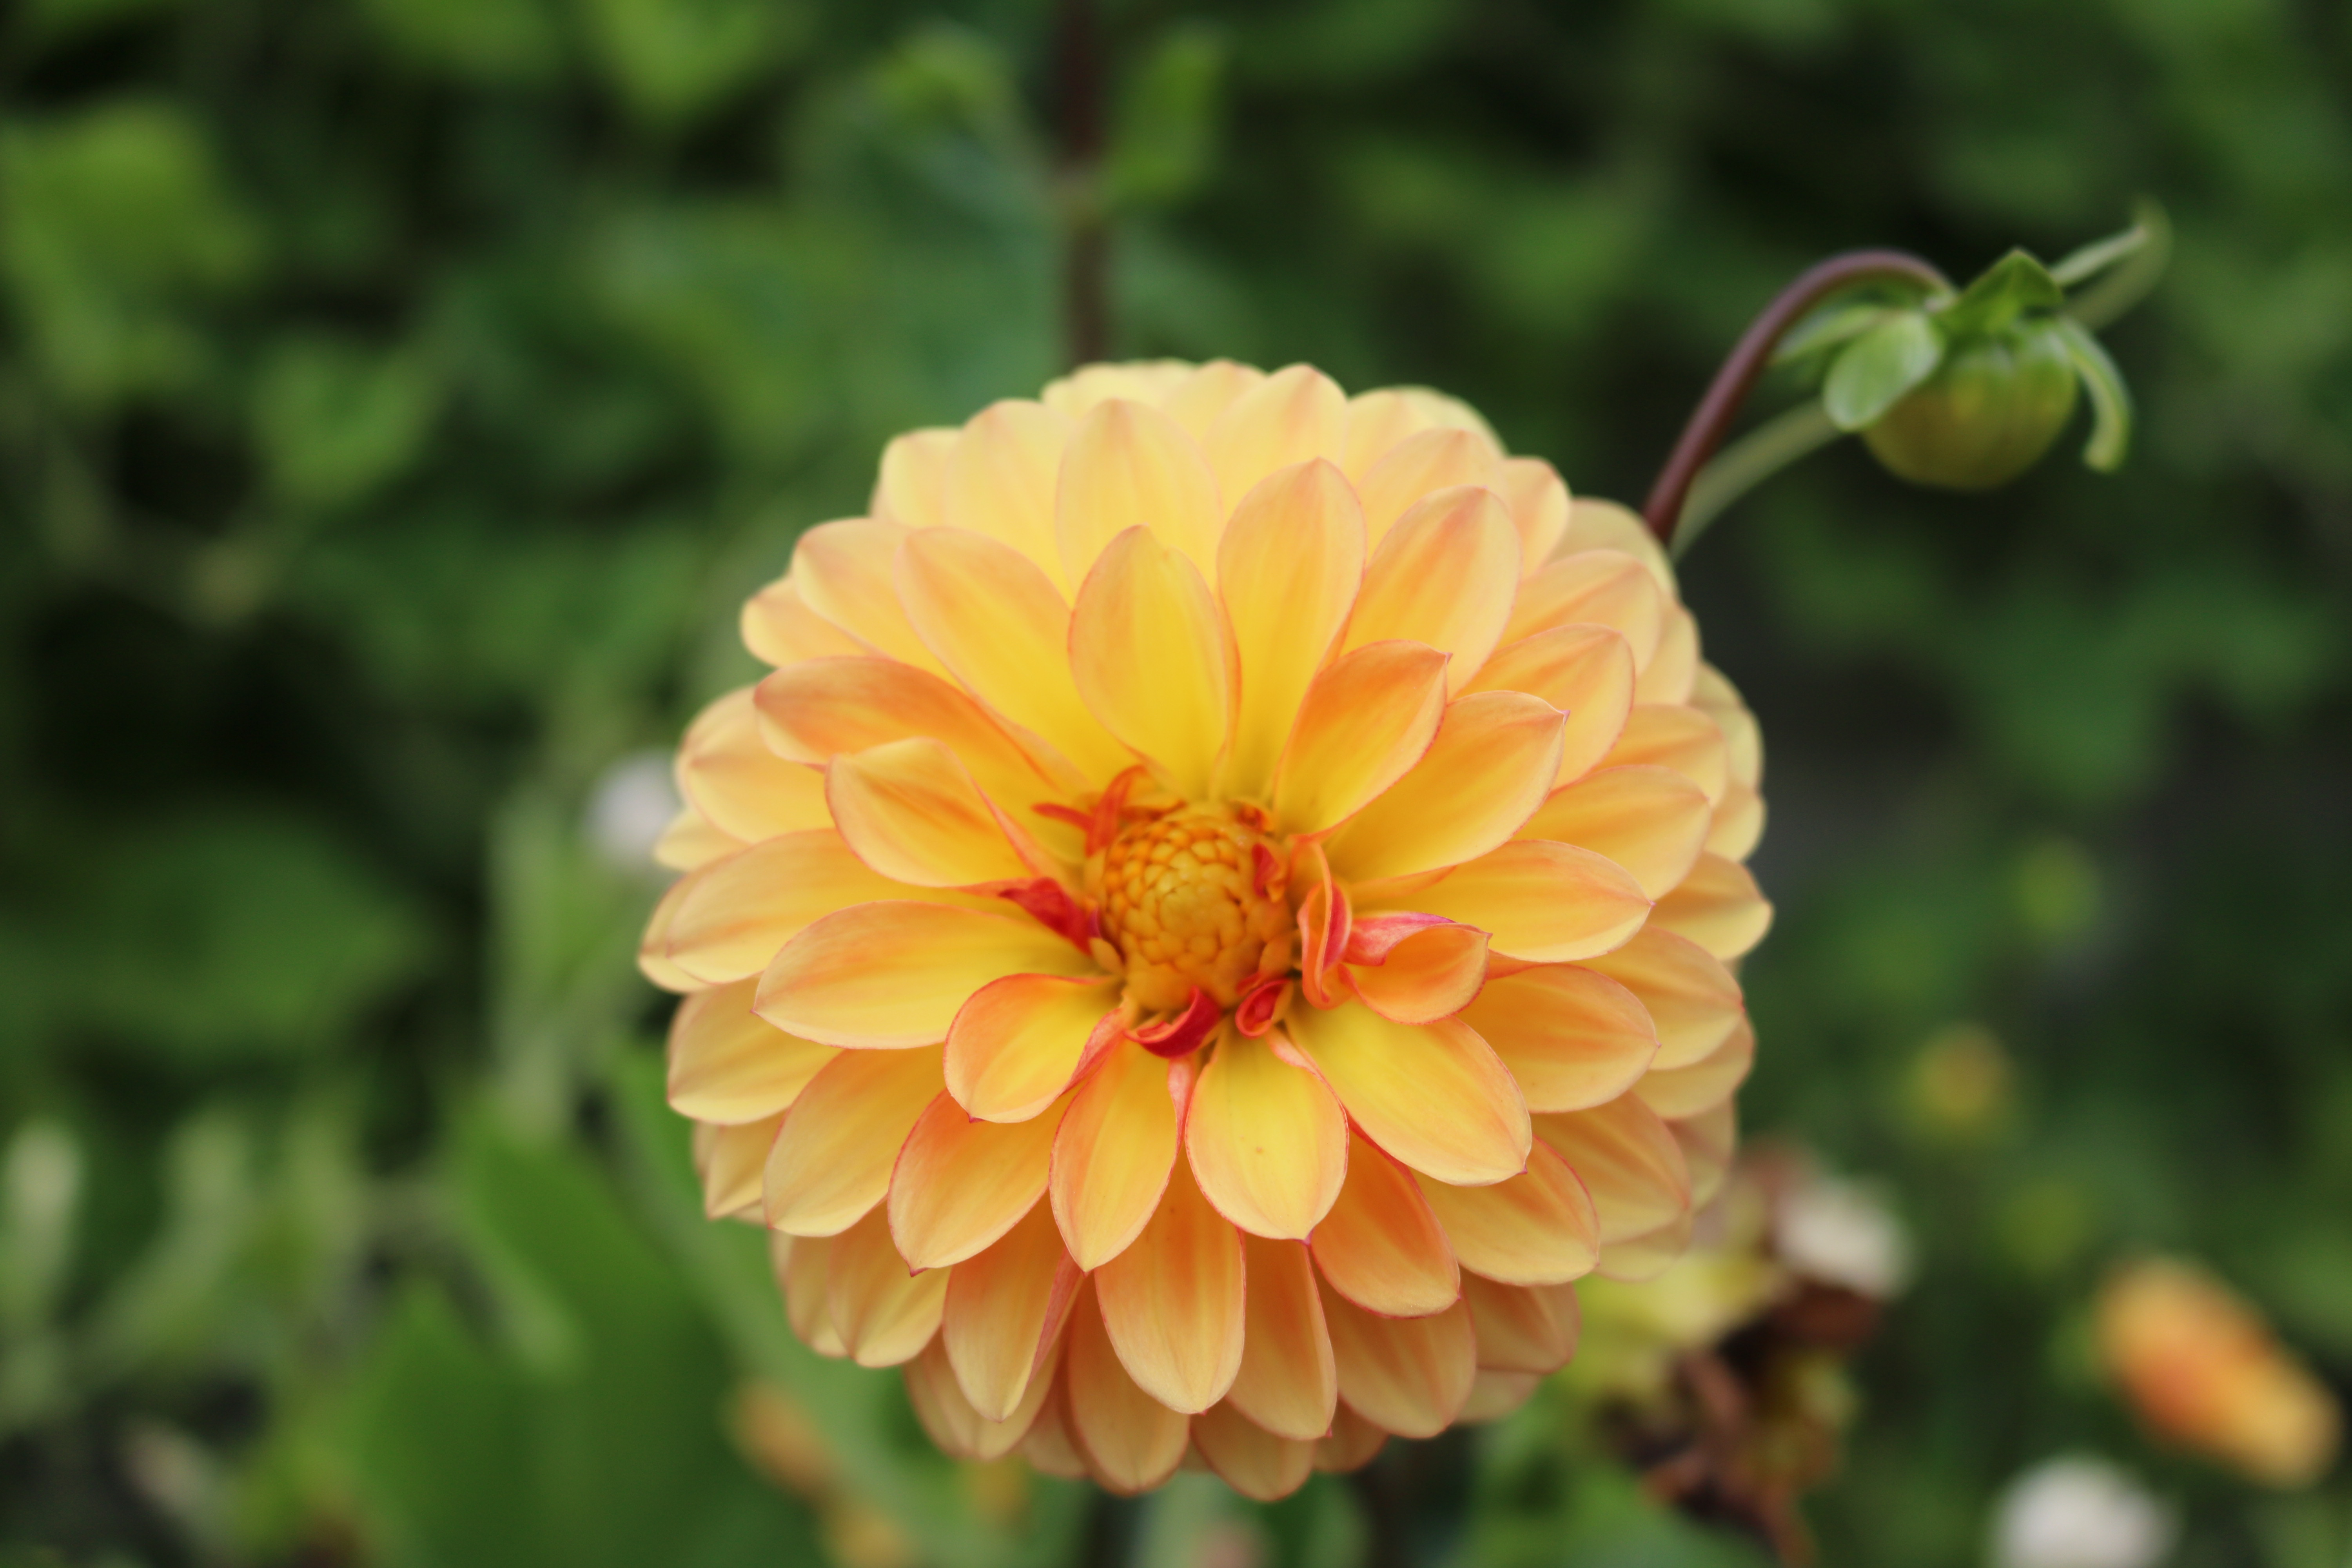 Dahlia 'Cancun' is brightening up the espalier wall this fall. Photo by Leslie Hunter, Aug. 23.